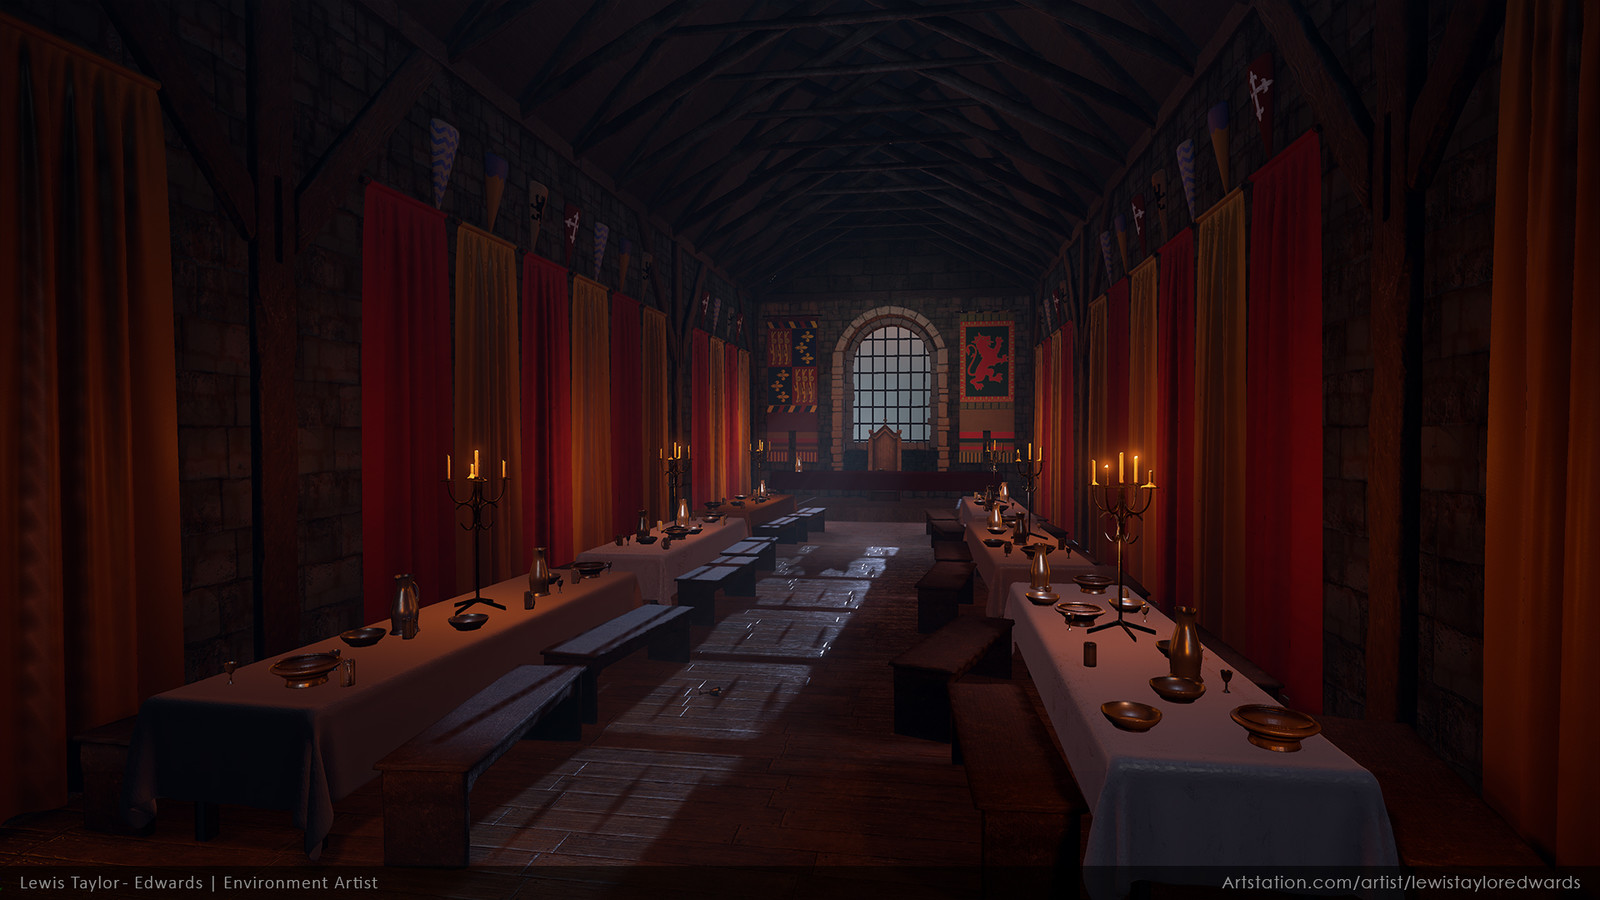 artstation - castle interior, lewis taylor-edwards